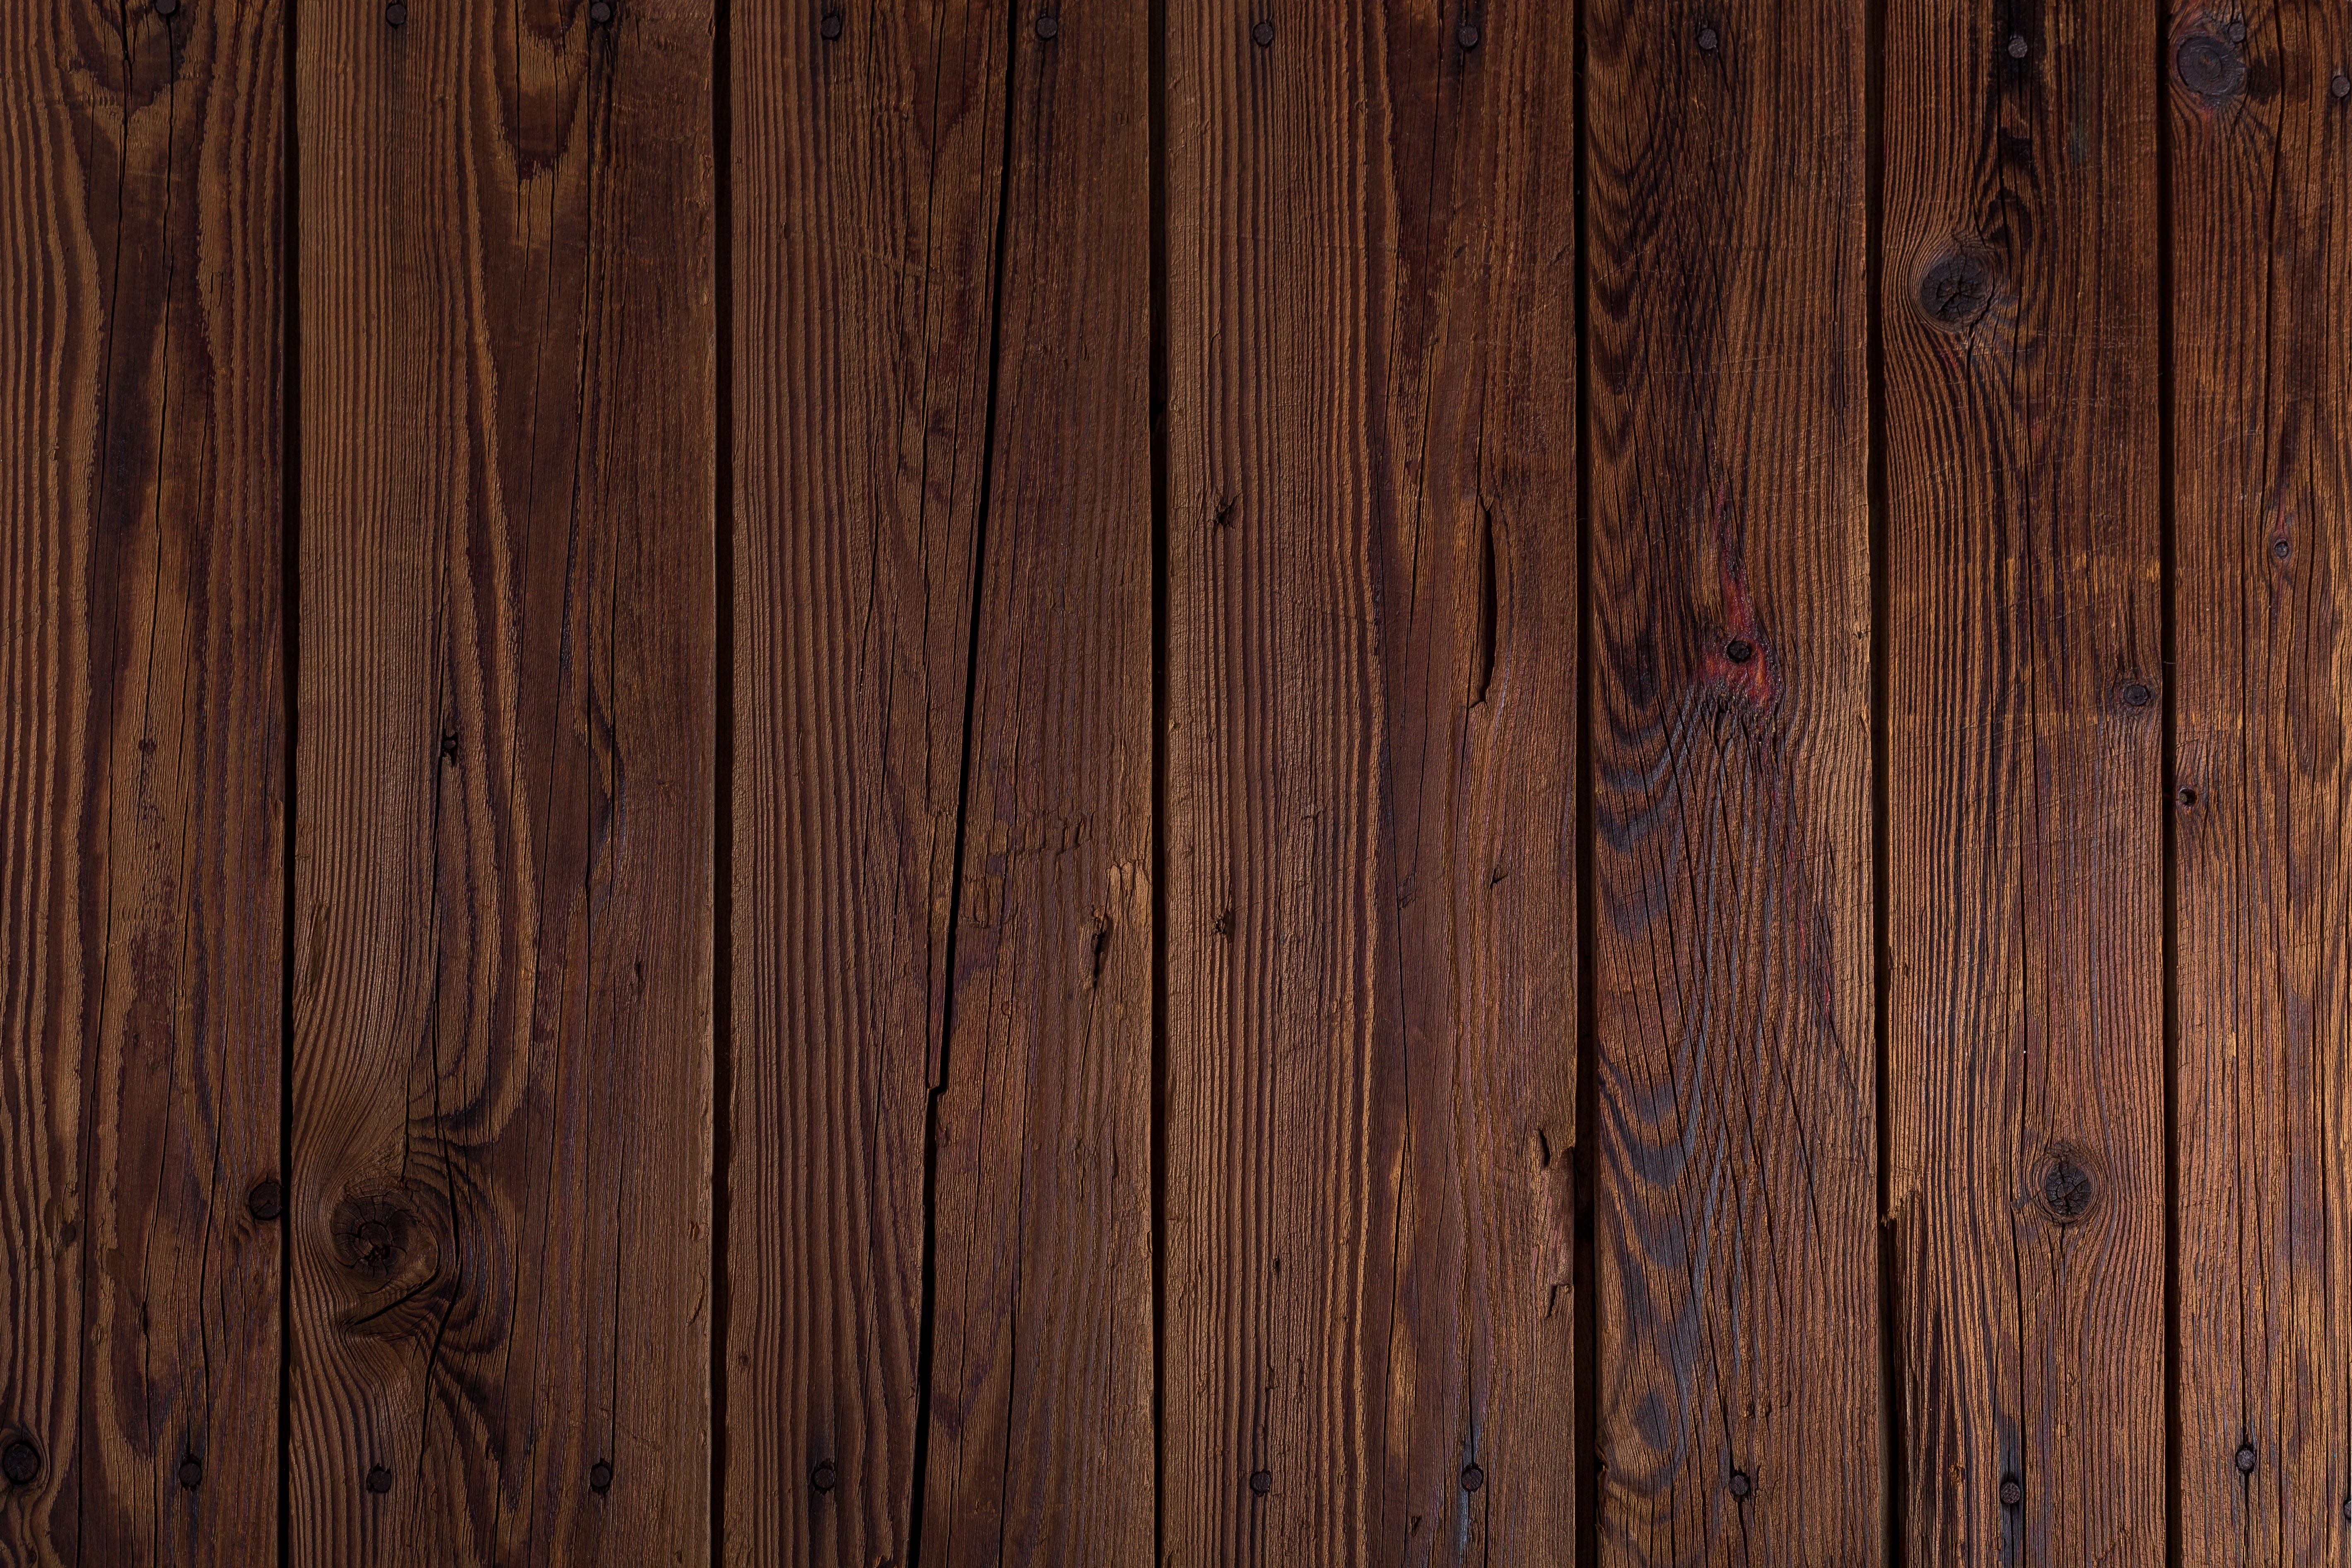 Close Up Of Wooden Plank